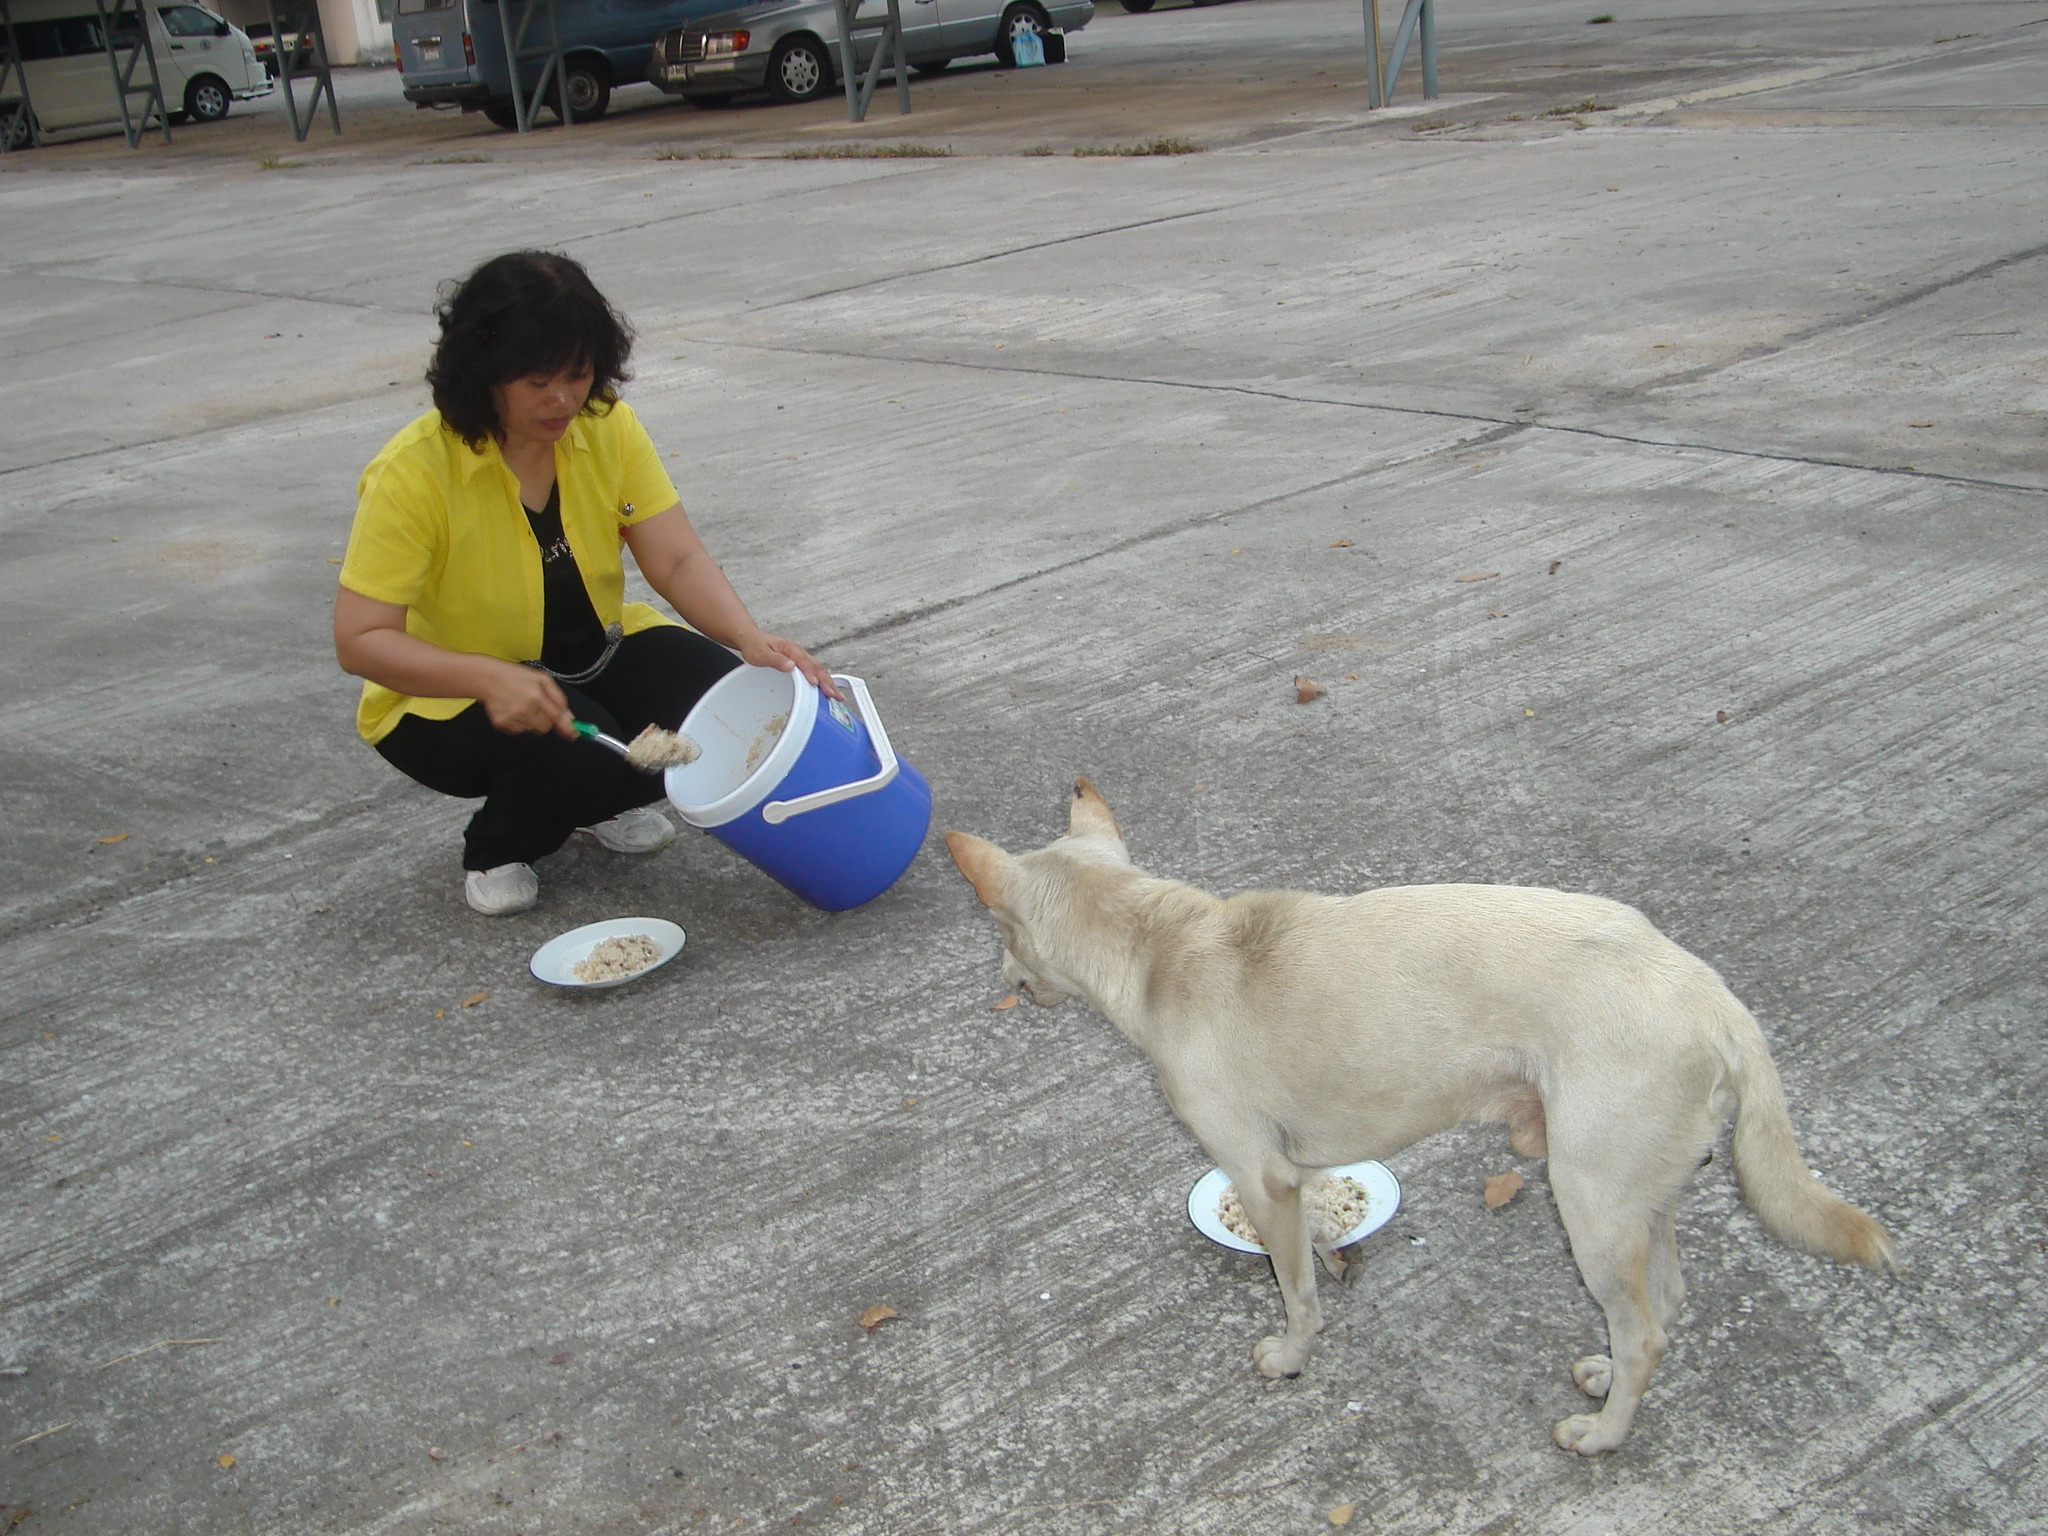 Feeding The Dog Human Food